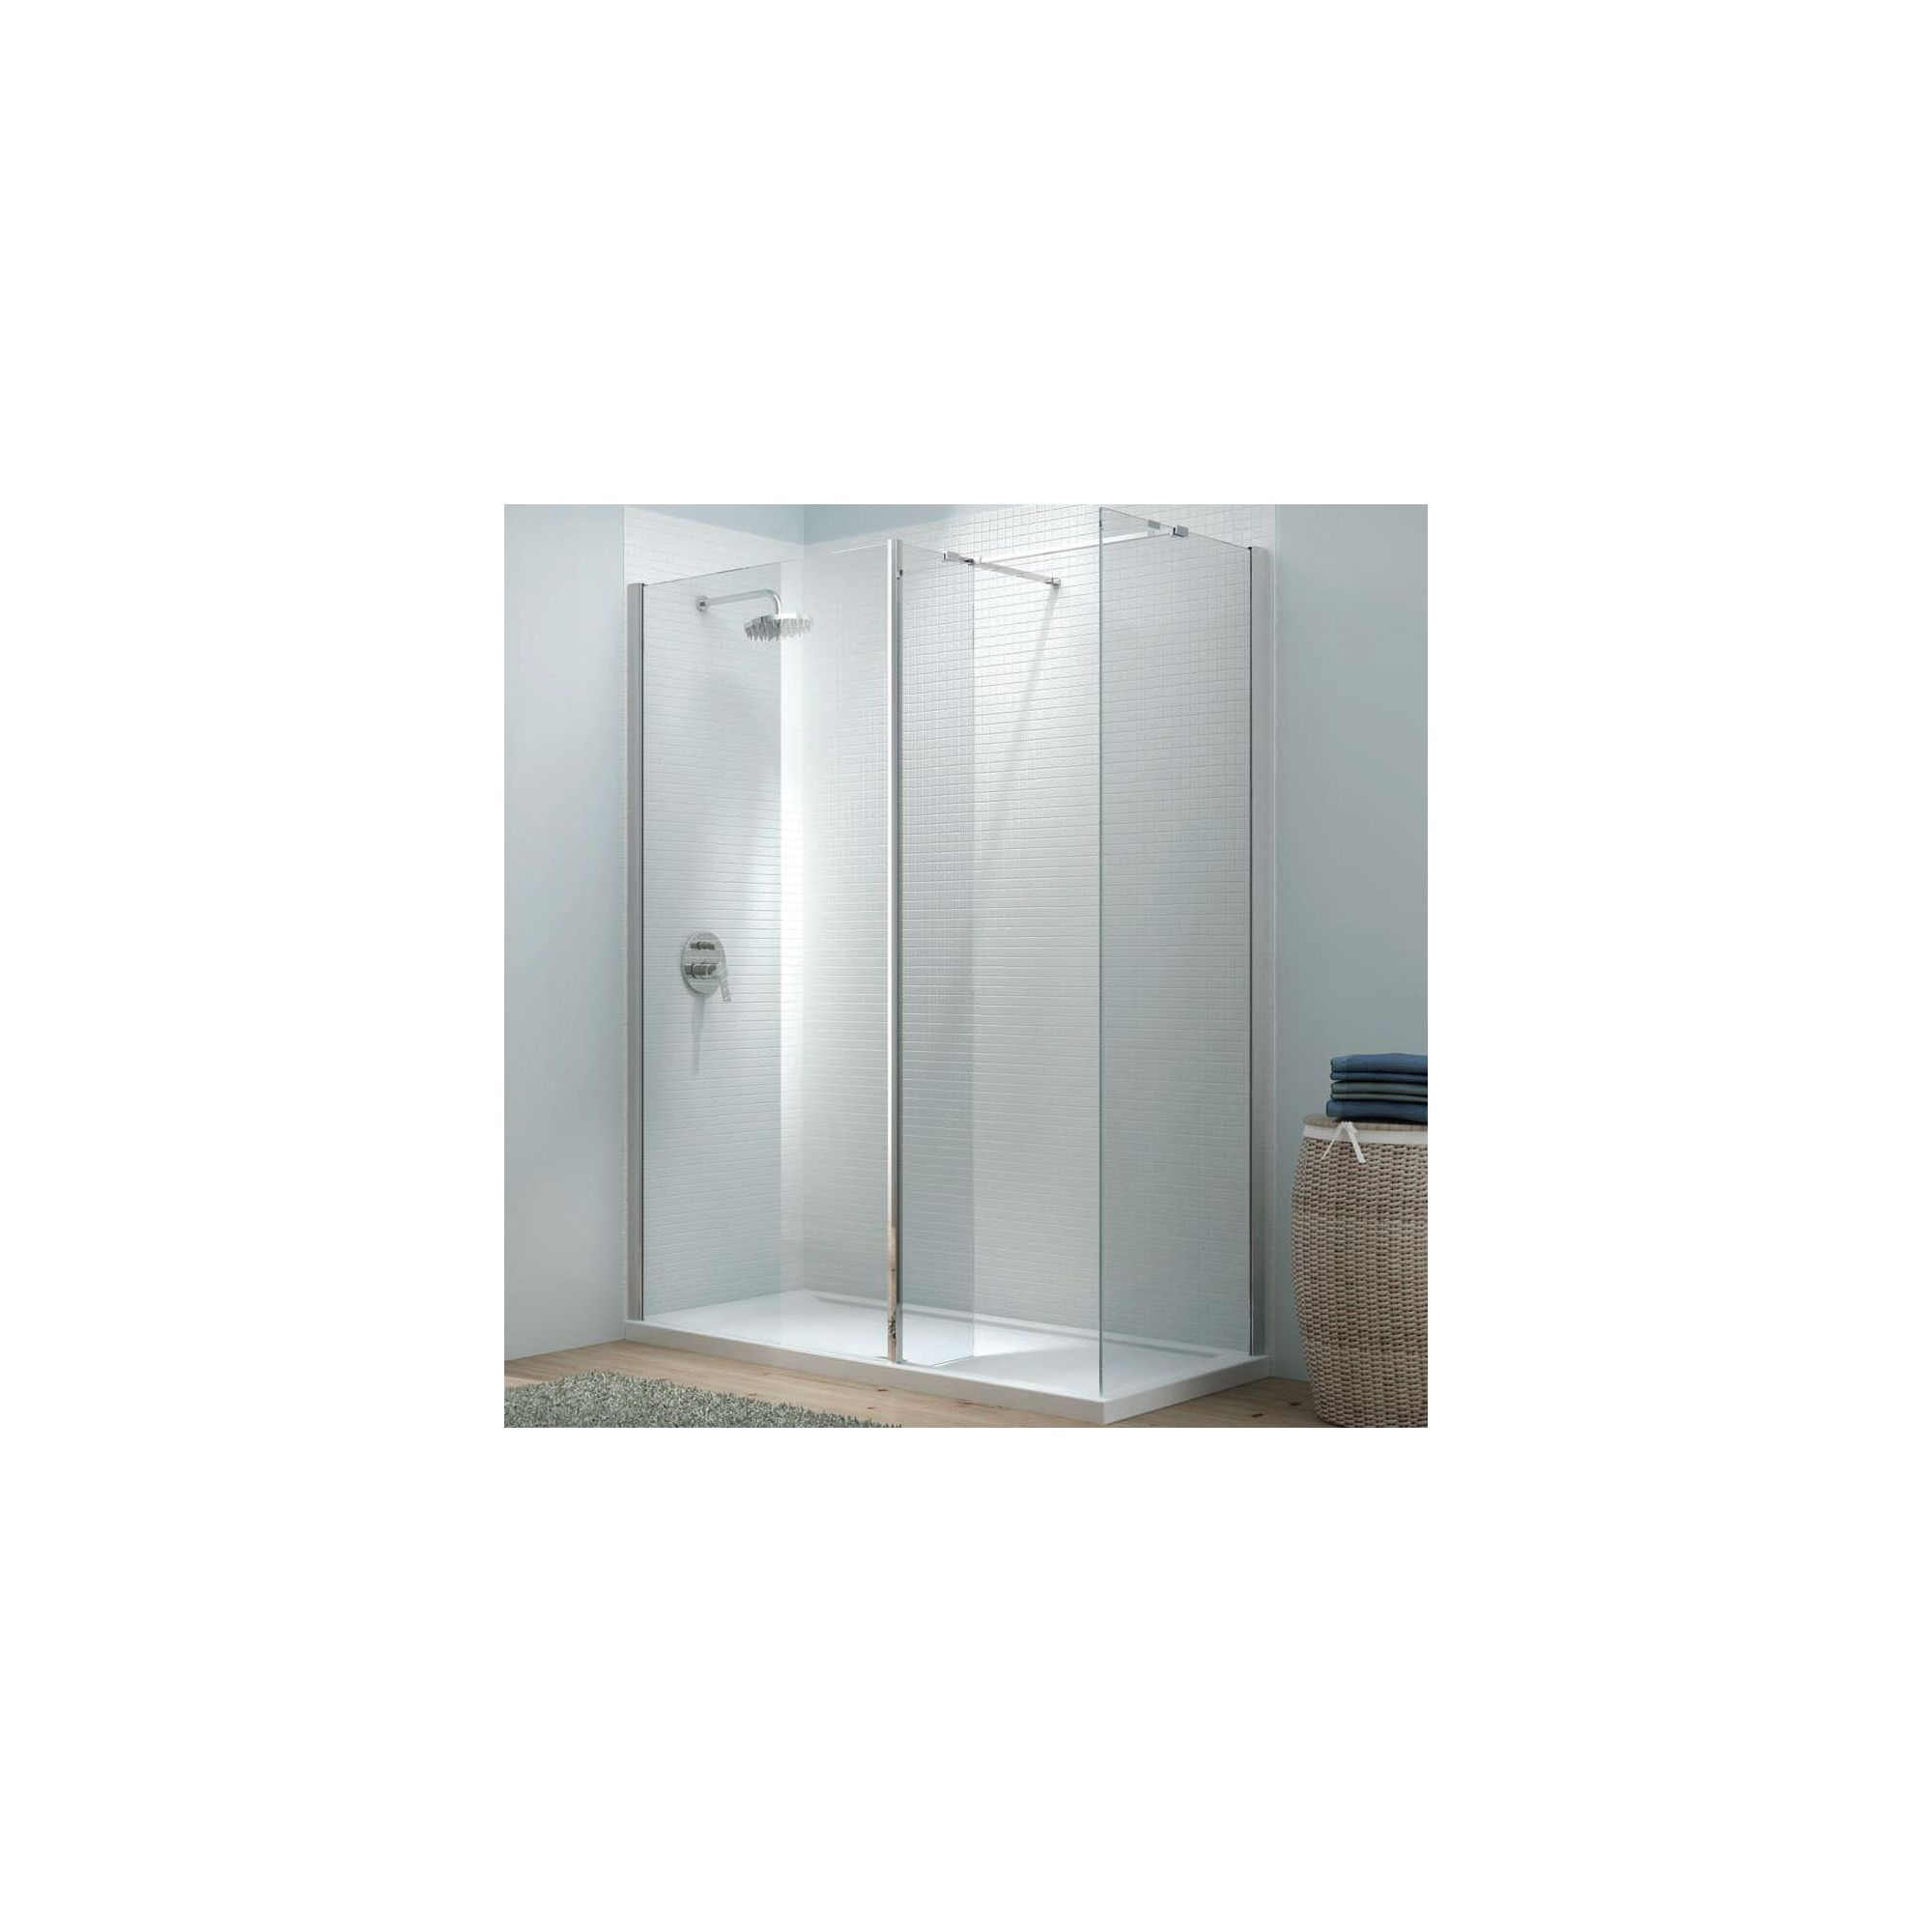 Merlyn Vivid Eight Cube Corner Walk-In Shower Enclosure, 1600mm x 800mm, Low Profile Tray, 8mm Glass at Tesco Direct